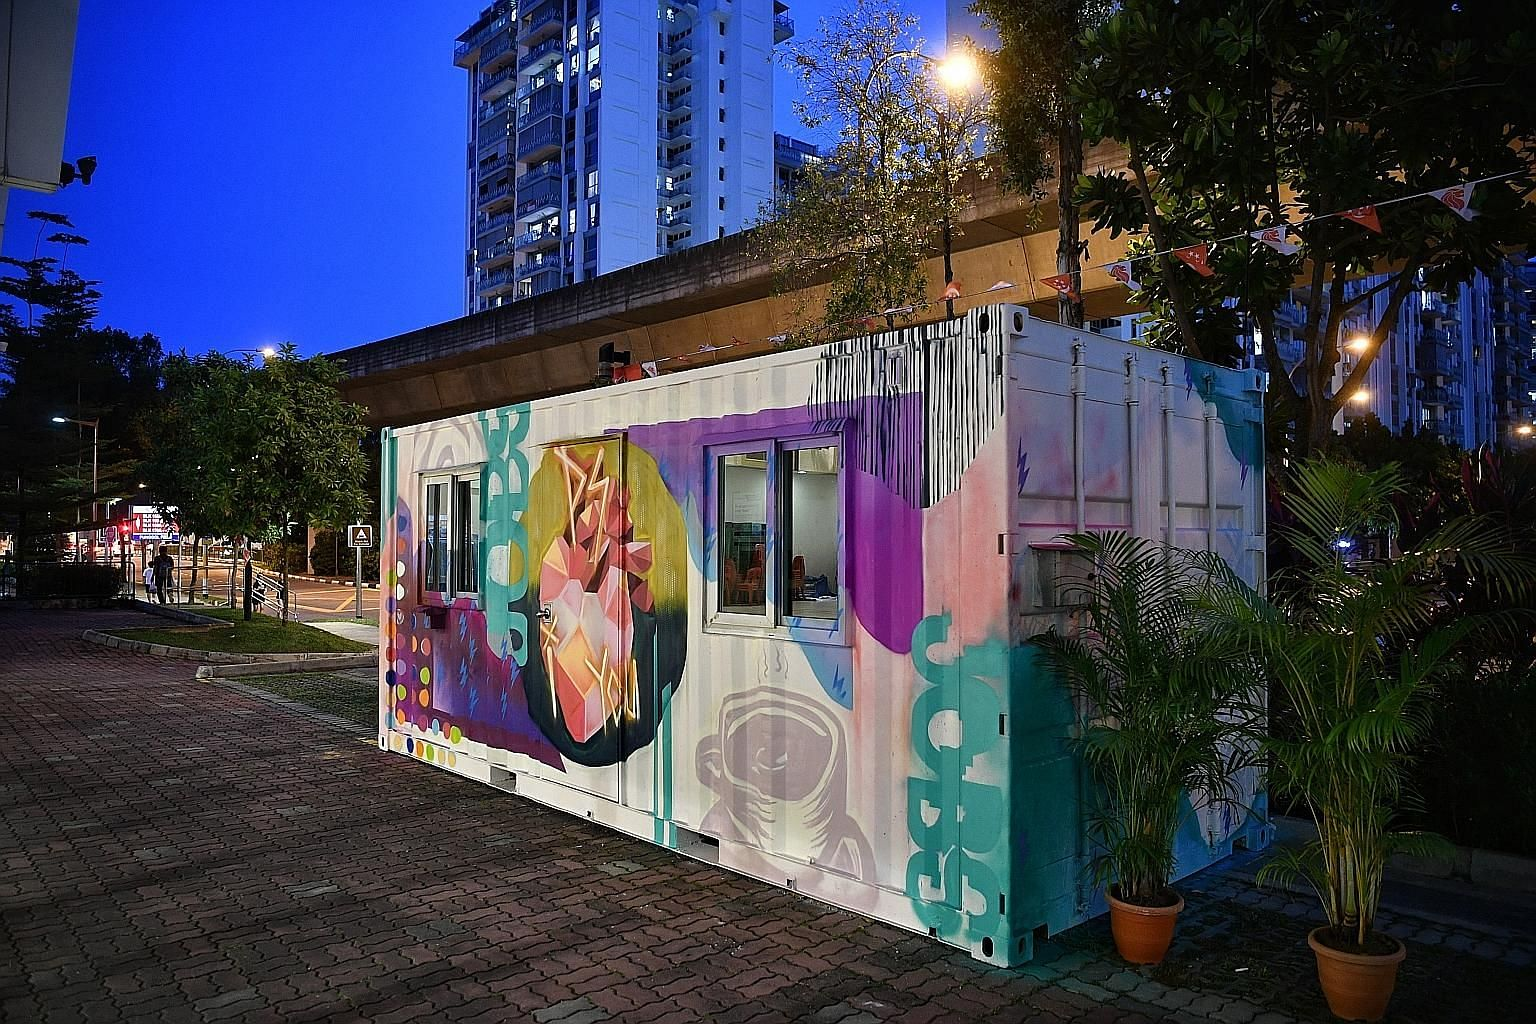 Launched yesterday, the Job Container outside Punggol 21 Community Club will be open on weekdays, and brings together the services of Workforce Singapore's SGUnited Jobs and Skills Centre, and Project Success, Singapore's first community-led job plac